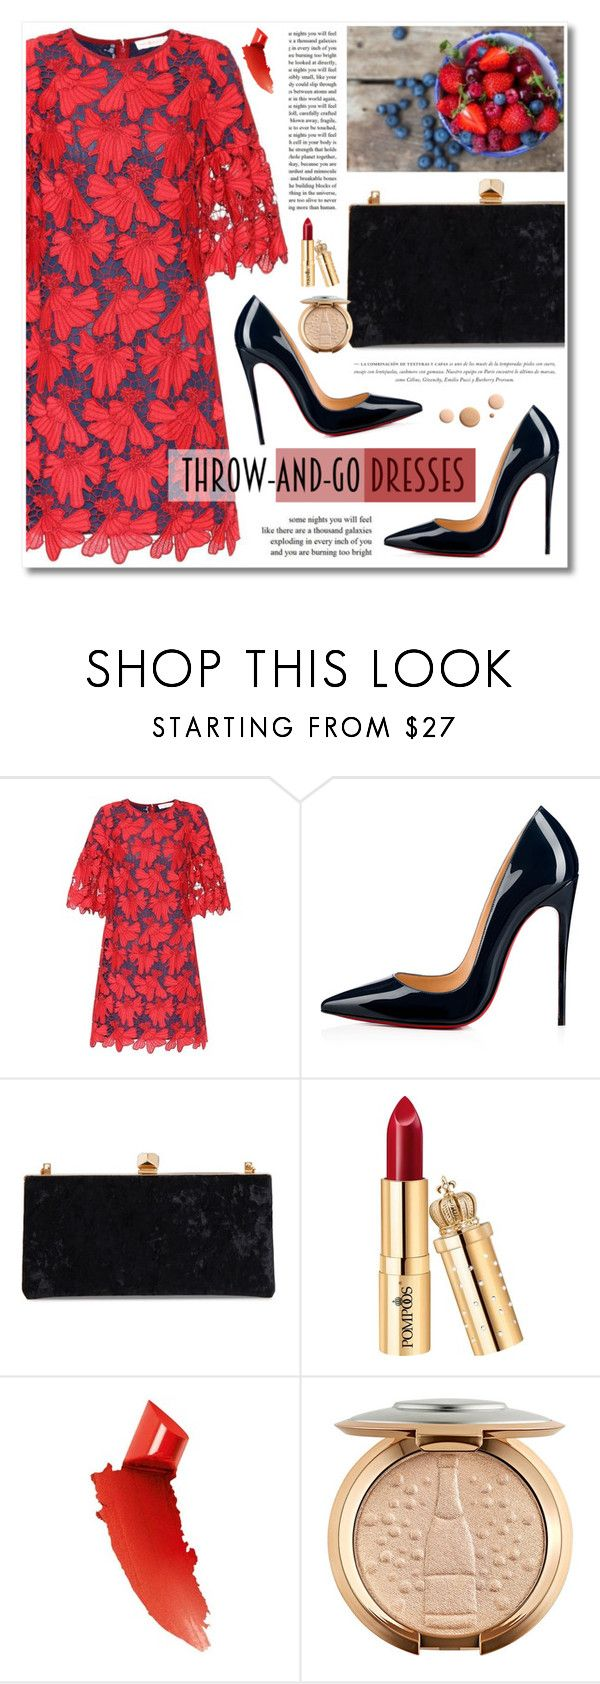 """""""Easy Outfitting: Throw-and-Go Dresses"""" by merima-kopic ❤ liked on Polyvore featuring Privé, Tory Burch, Christian Louboutin, Jimmy Choo, By Terry and CC"""